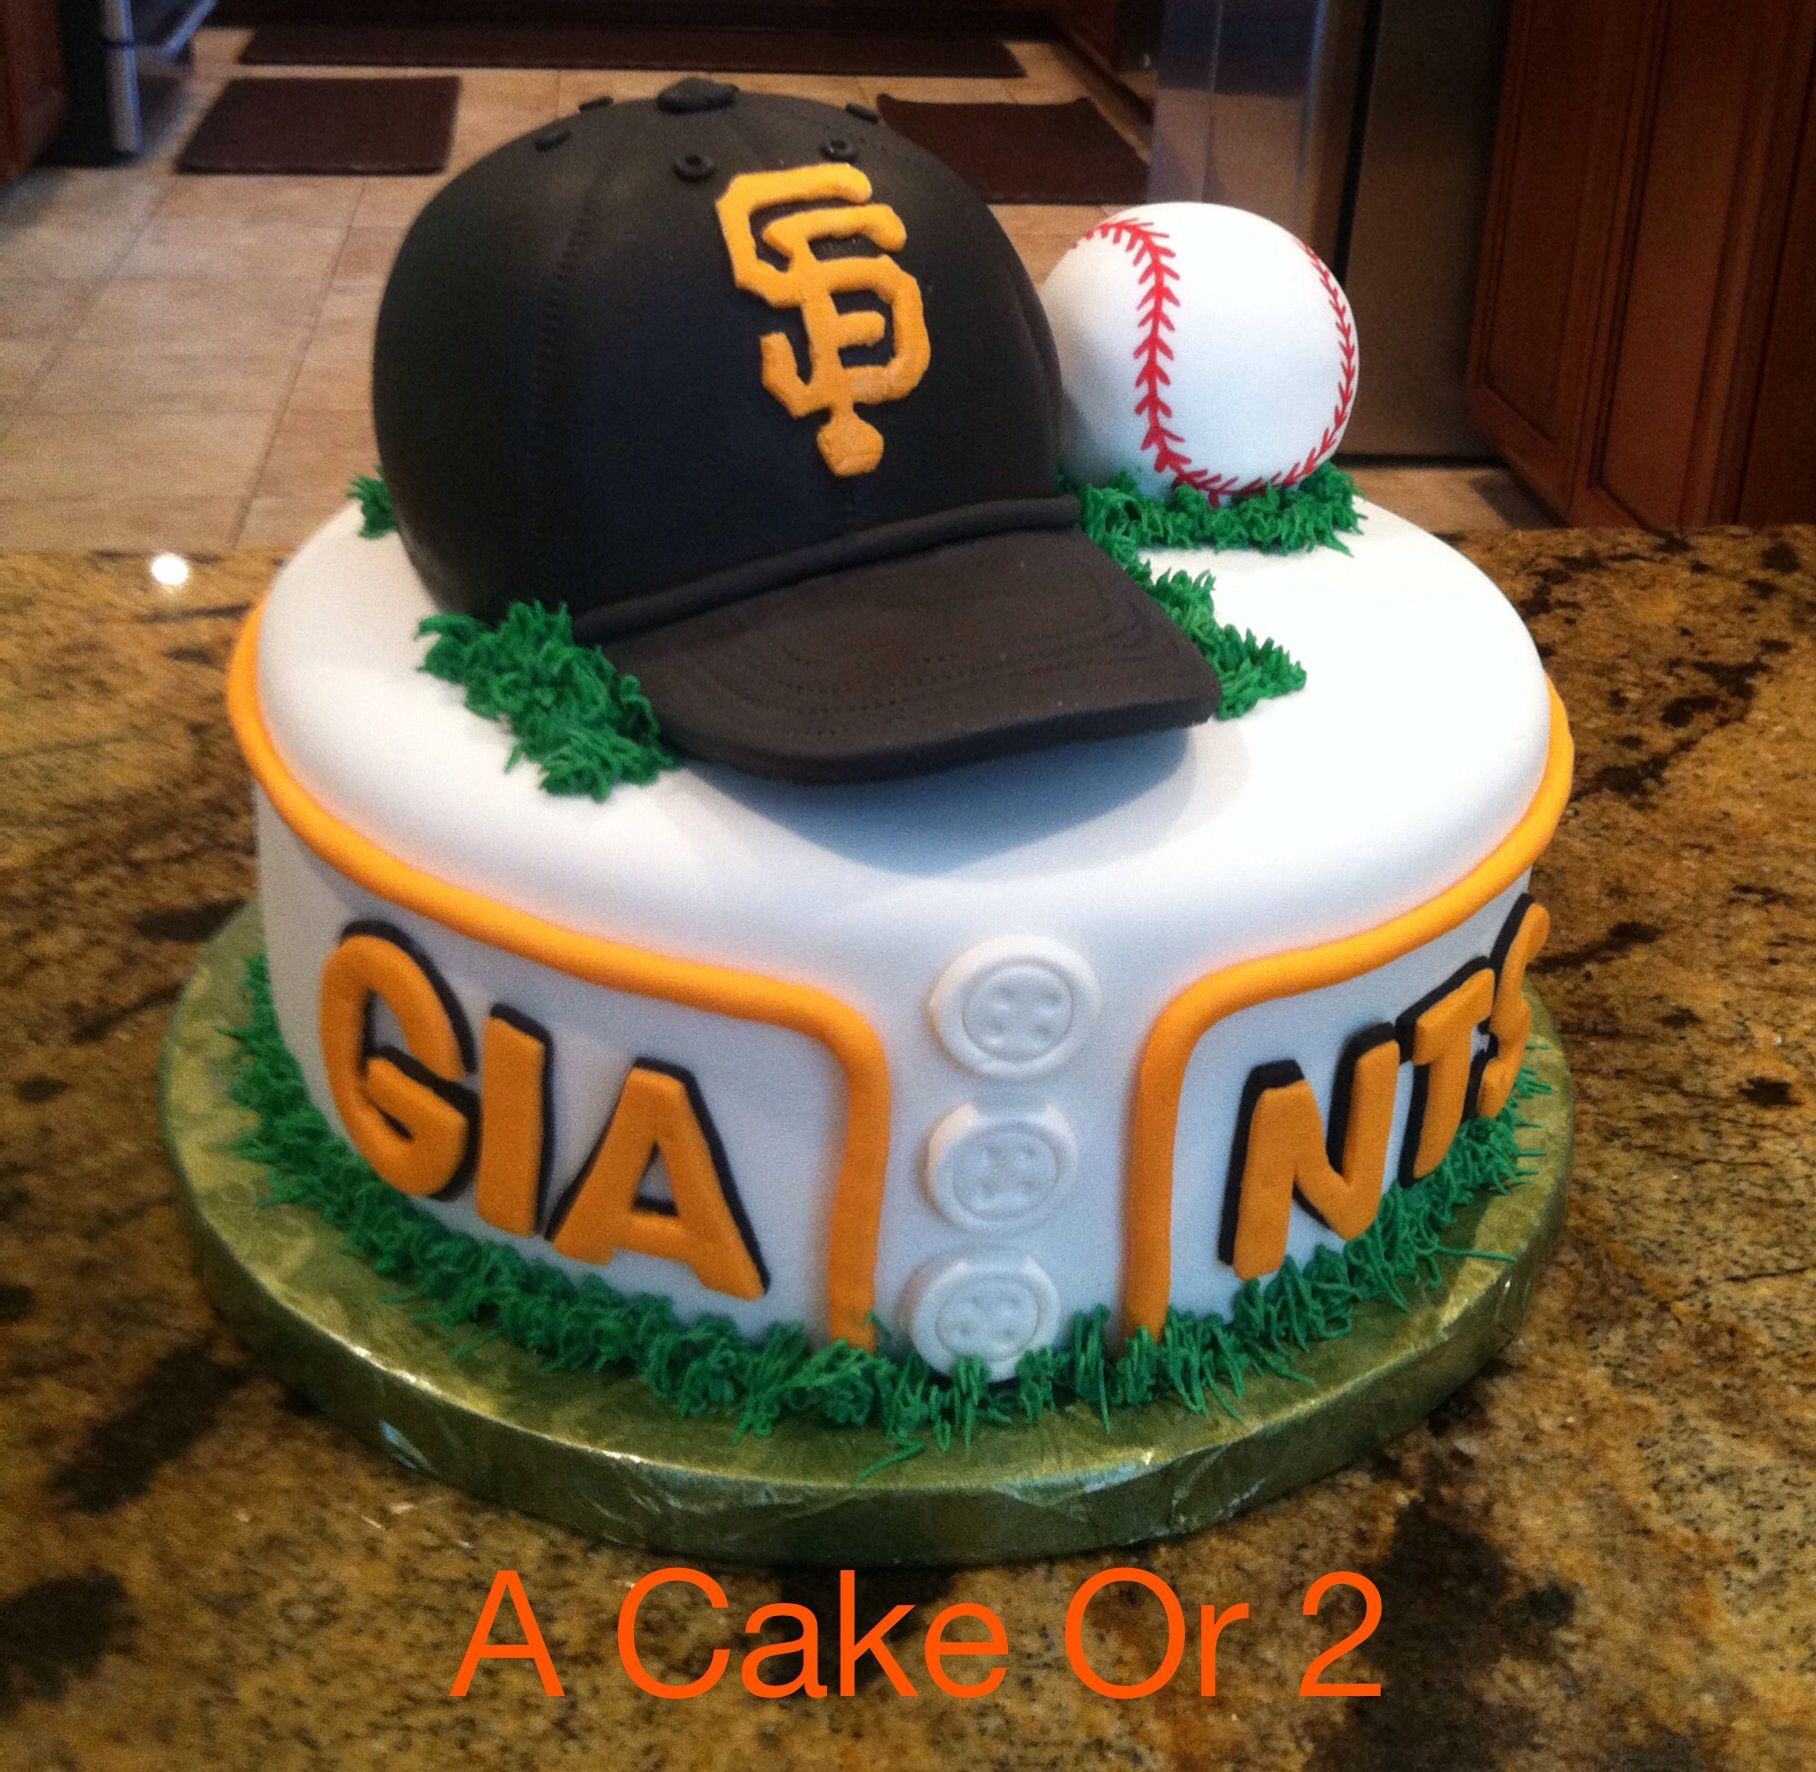 San Francisco Giants birthday cake acakeor2comcastnet cakes and